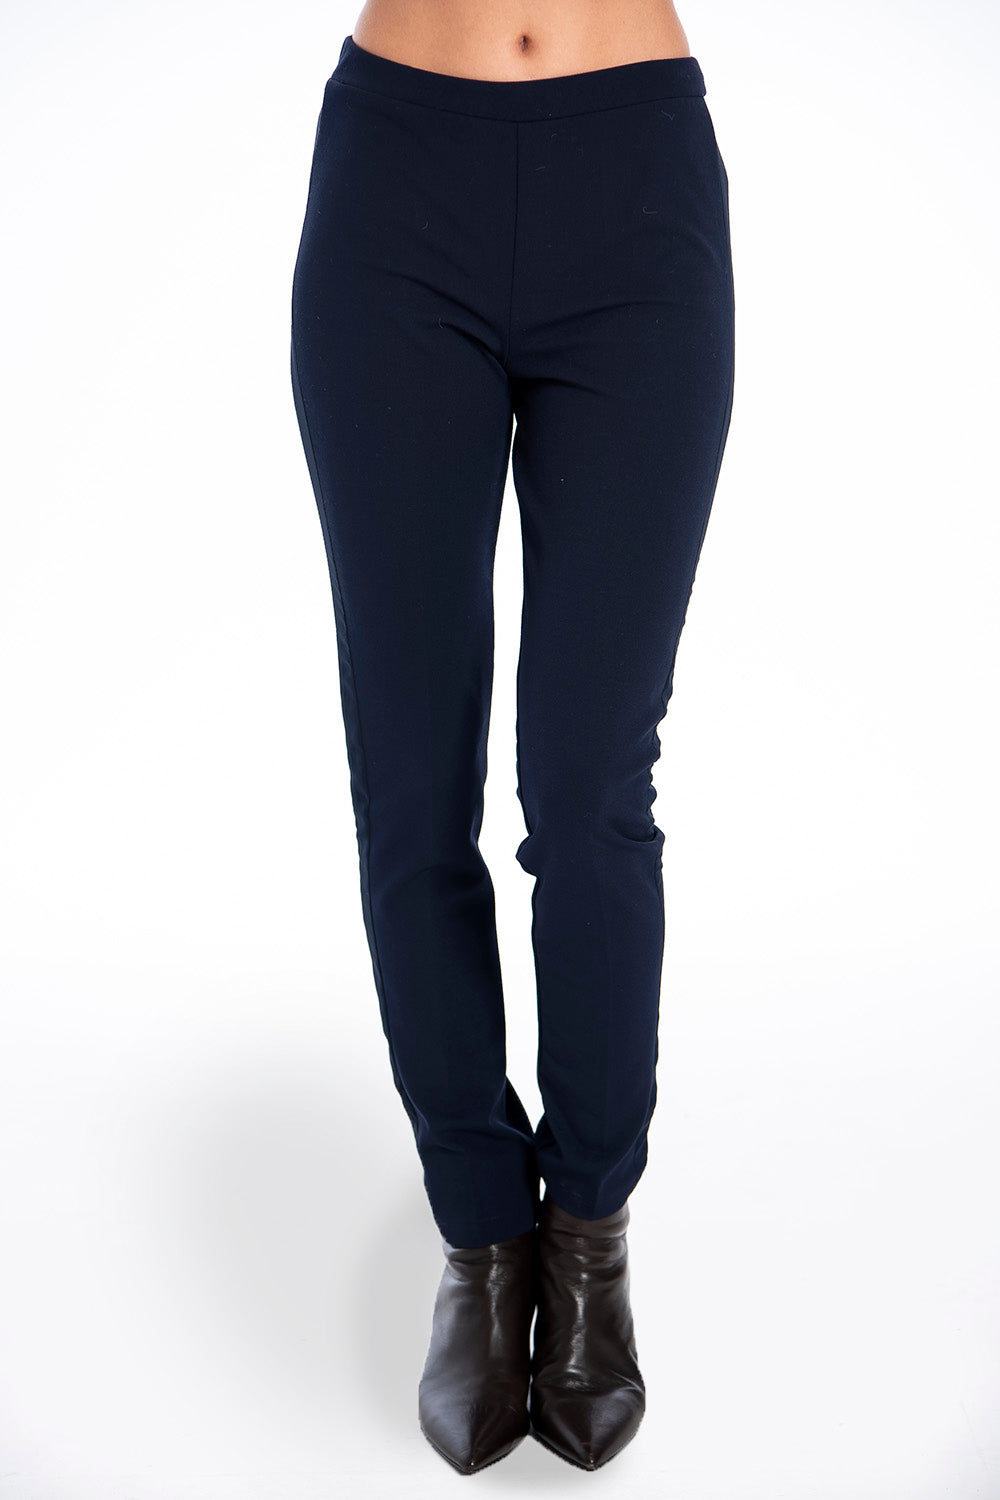 Akè side see through stripe in comfy trousers